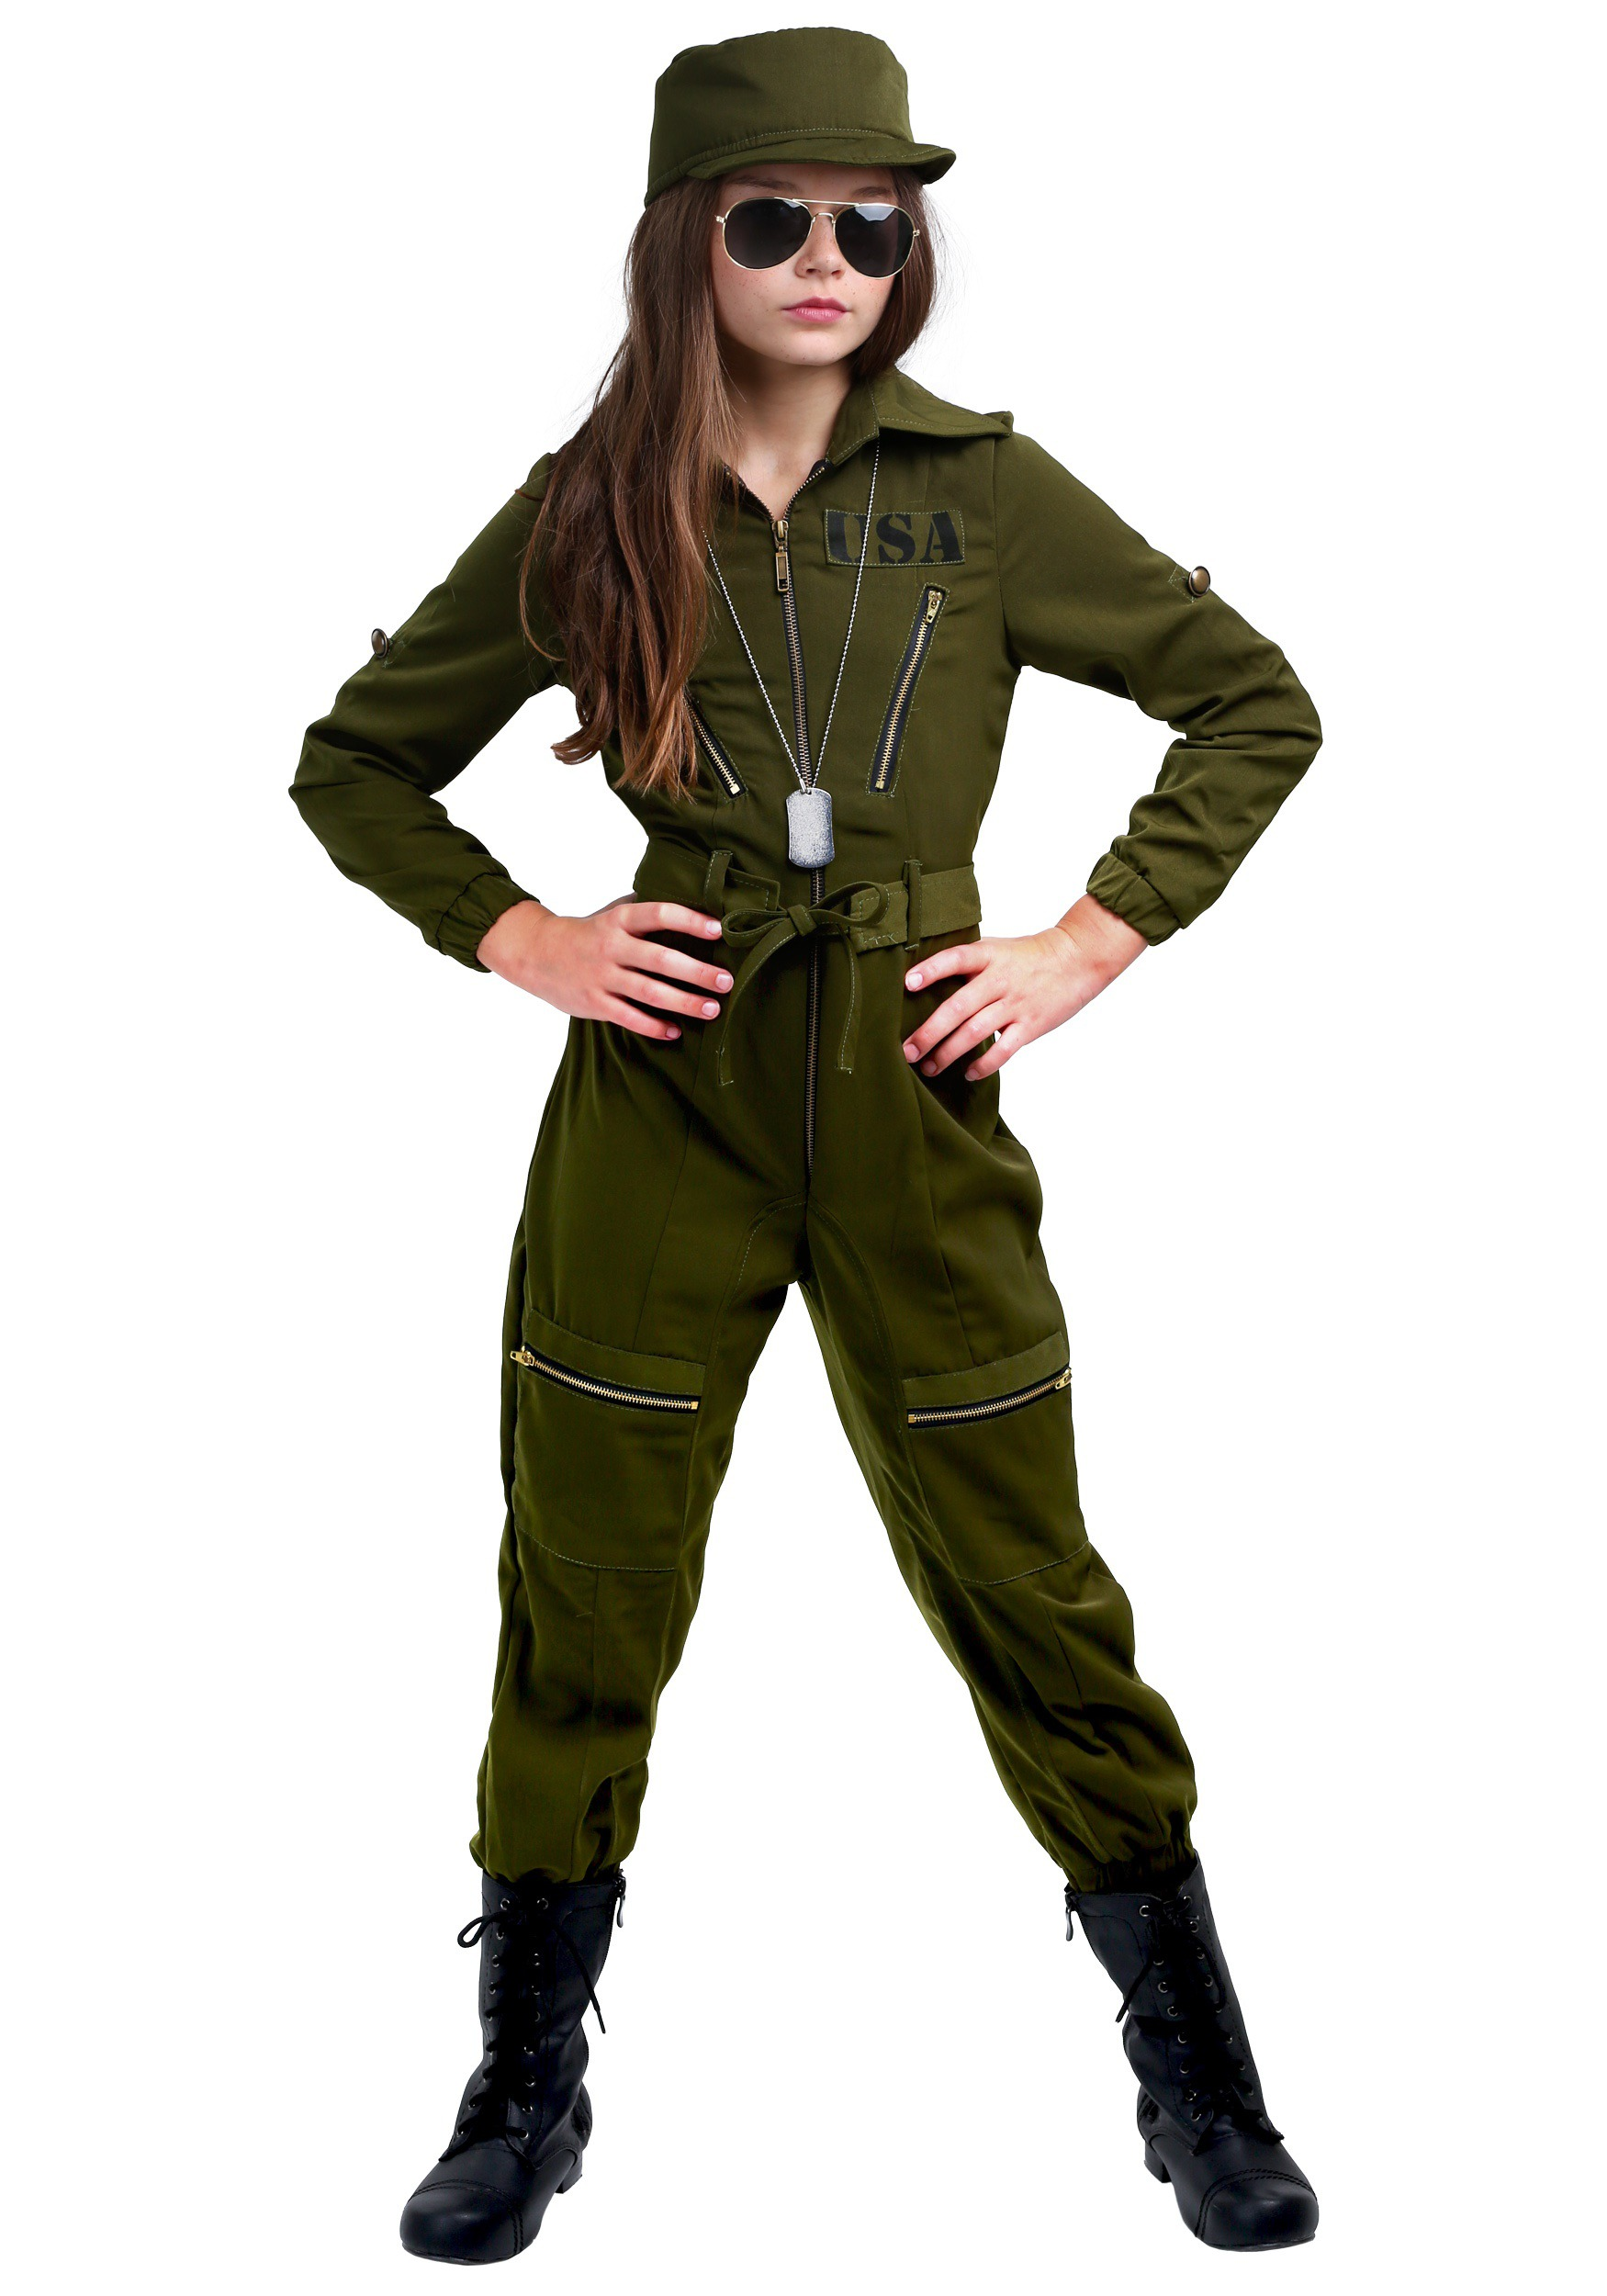 naked girl in flight suit